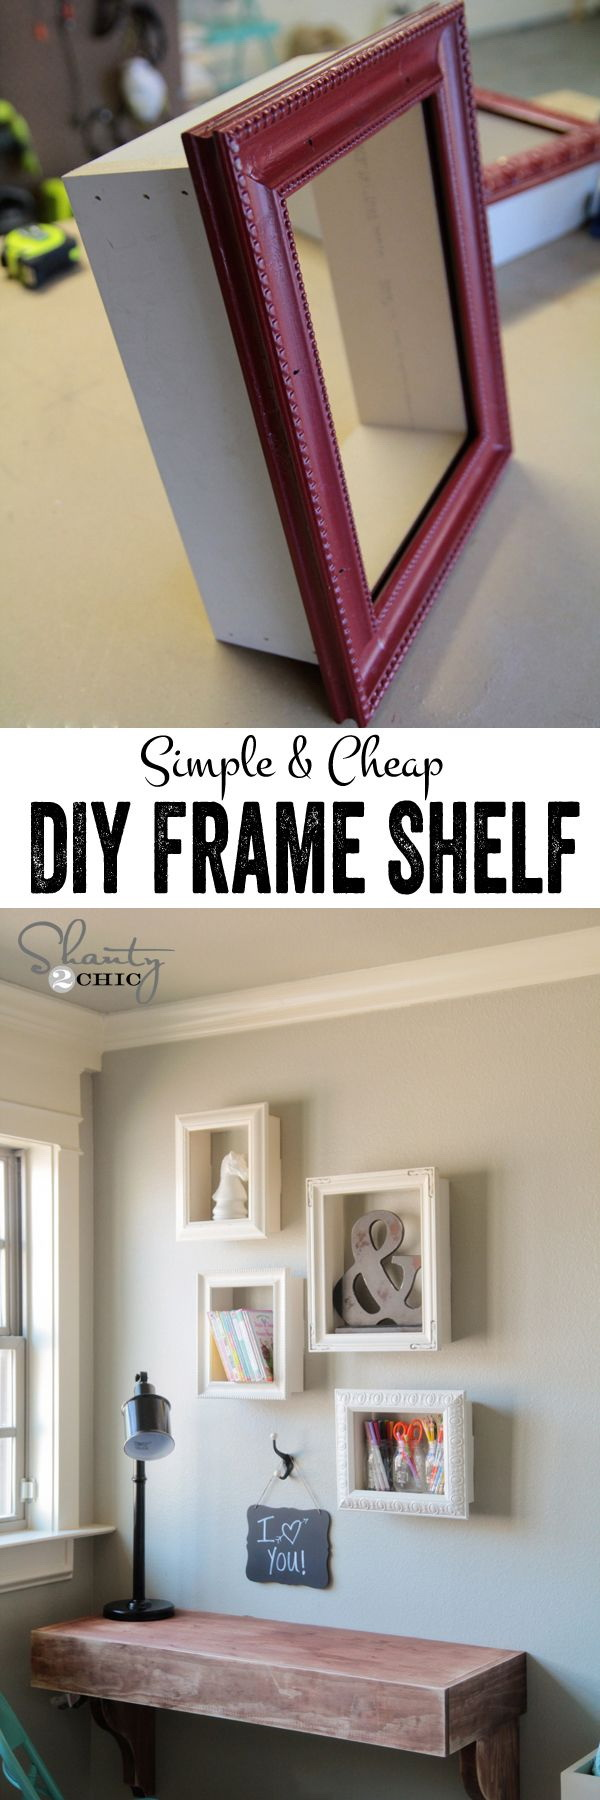 DIY Frames for Wall Decor:  Turn the simple frames from the local thrift store into these expensive frames by attaching wood to all sides and hang on wall. Low budget with high impact DIY project for your home decor!